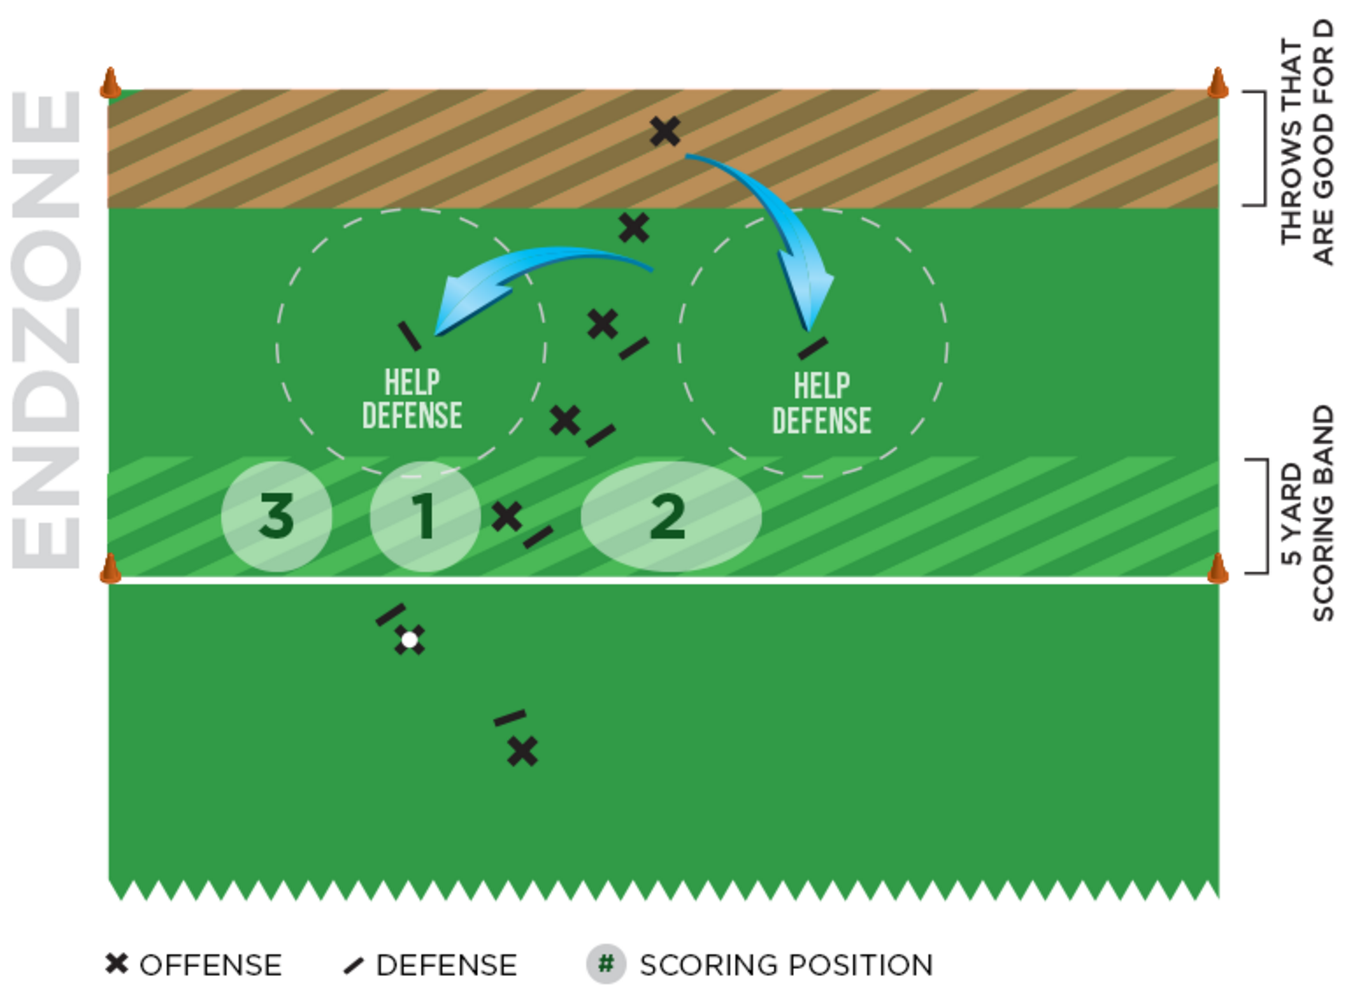 endzone-offense-diagram